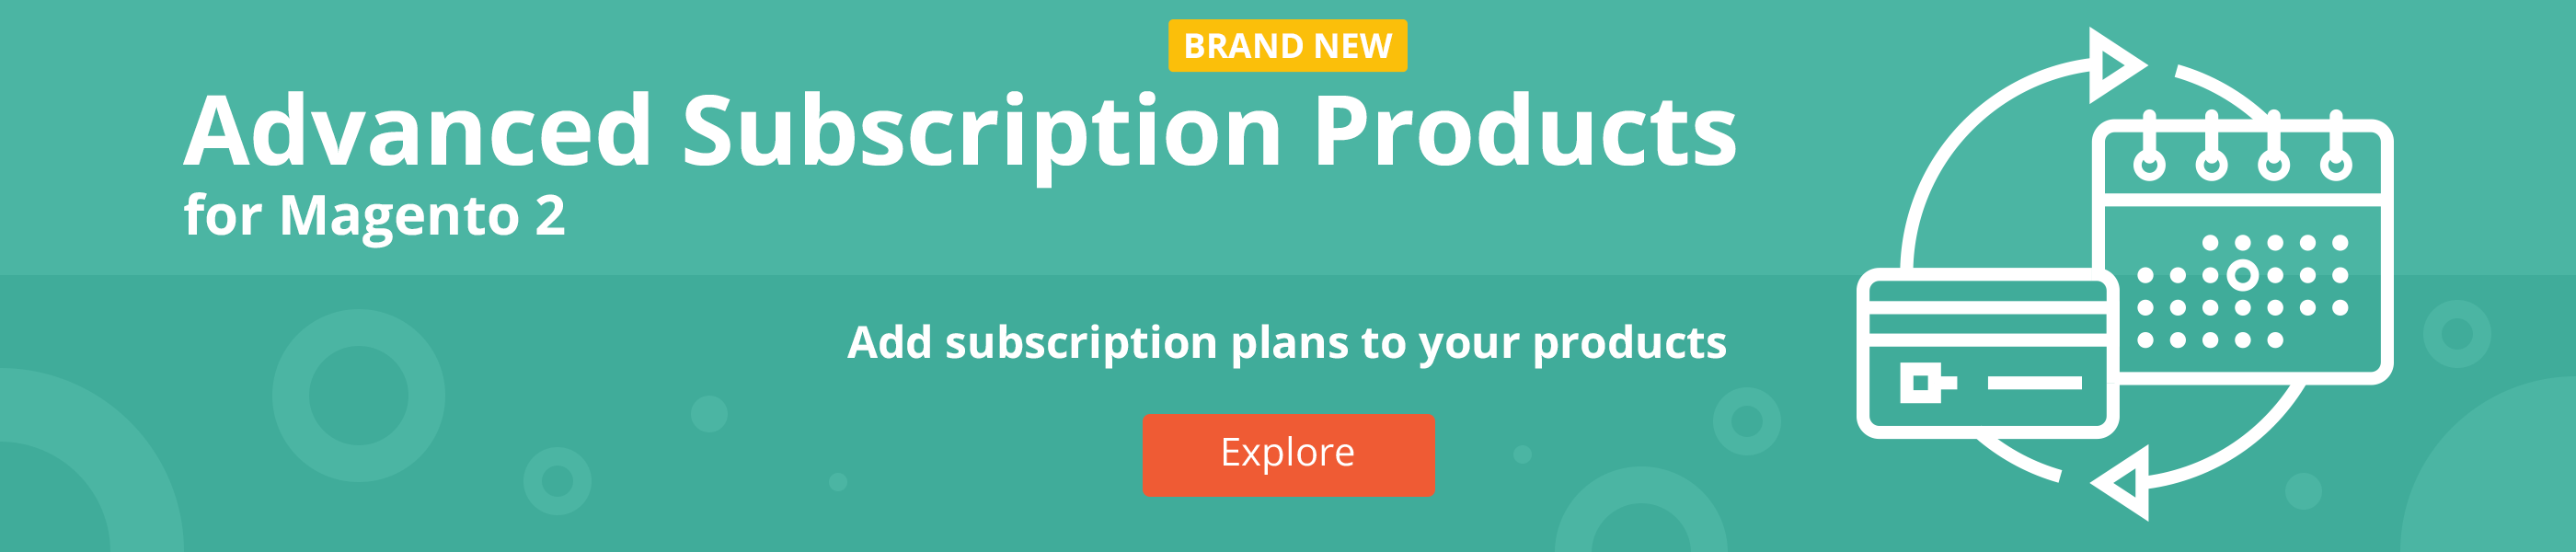 Advanced Subscription Products Release